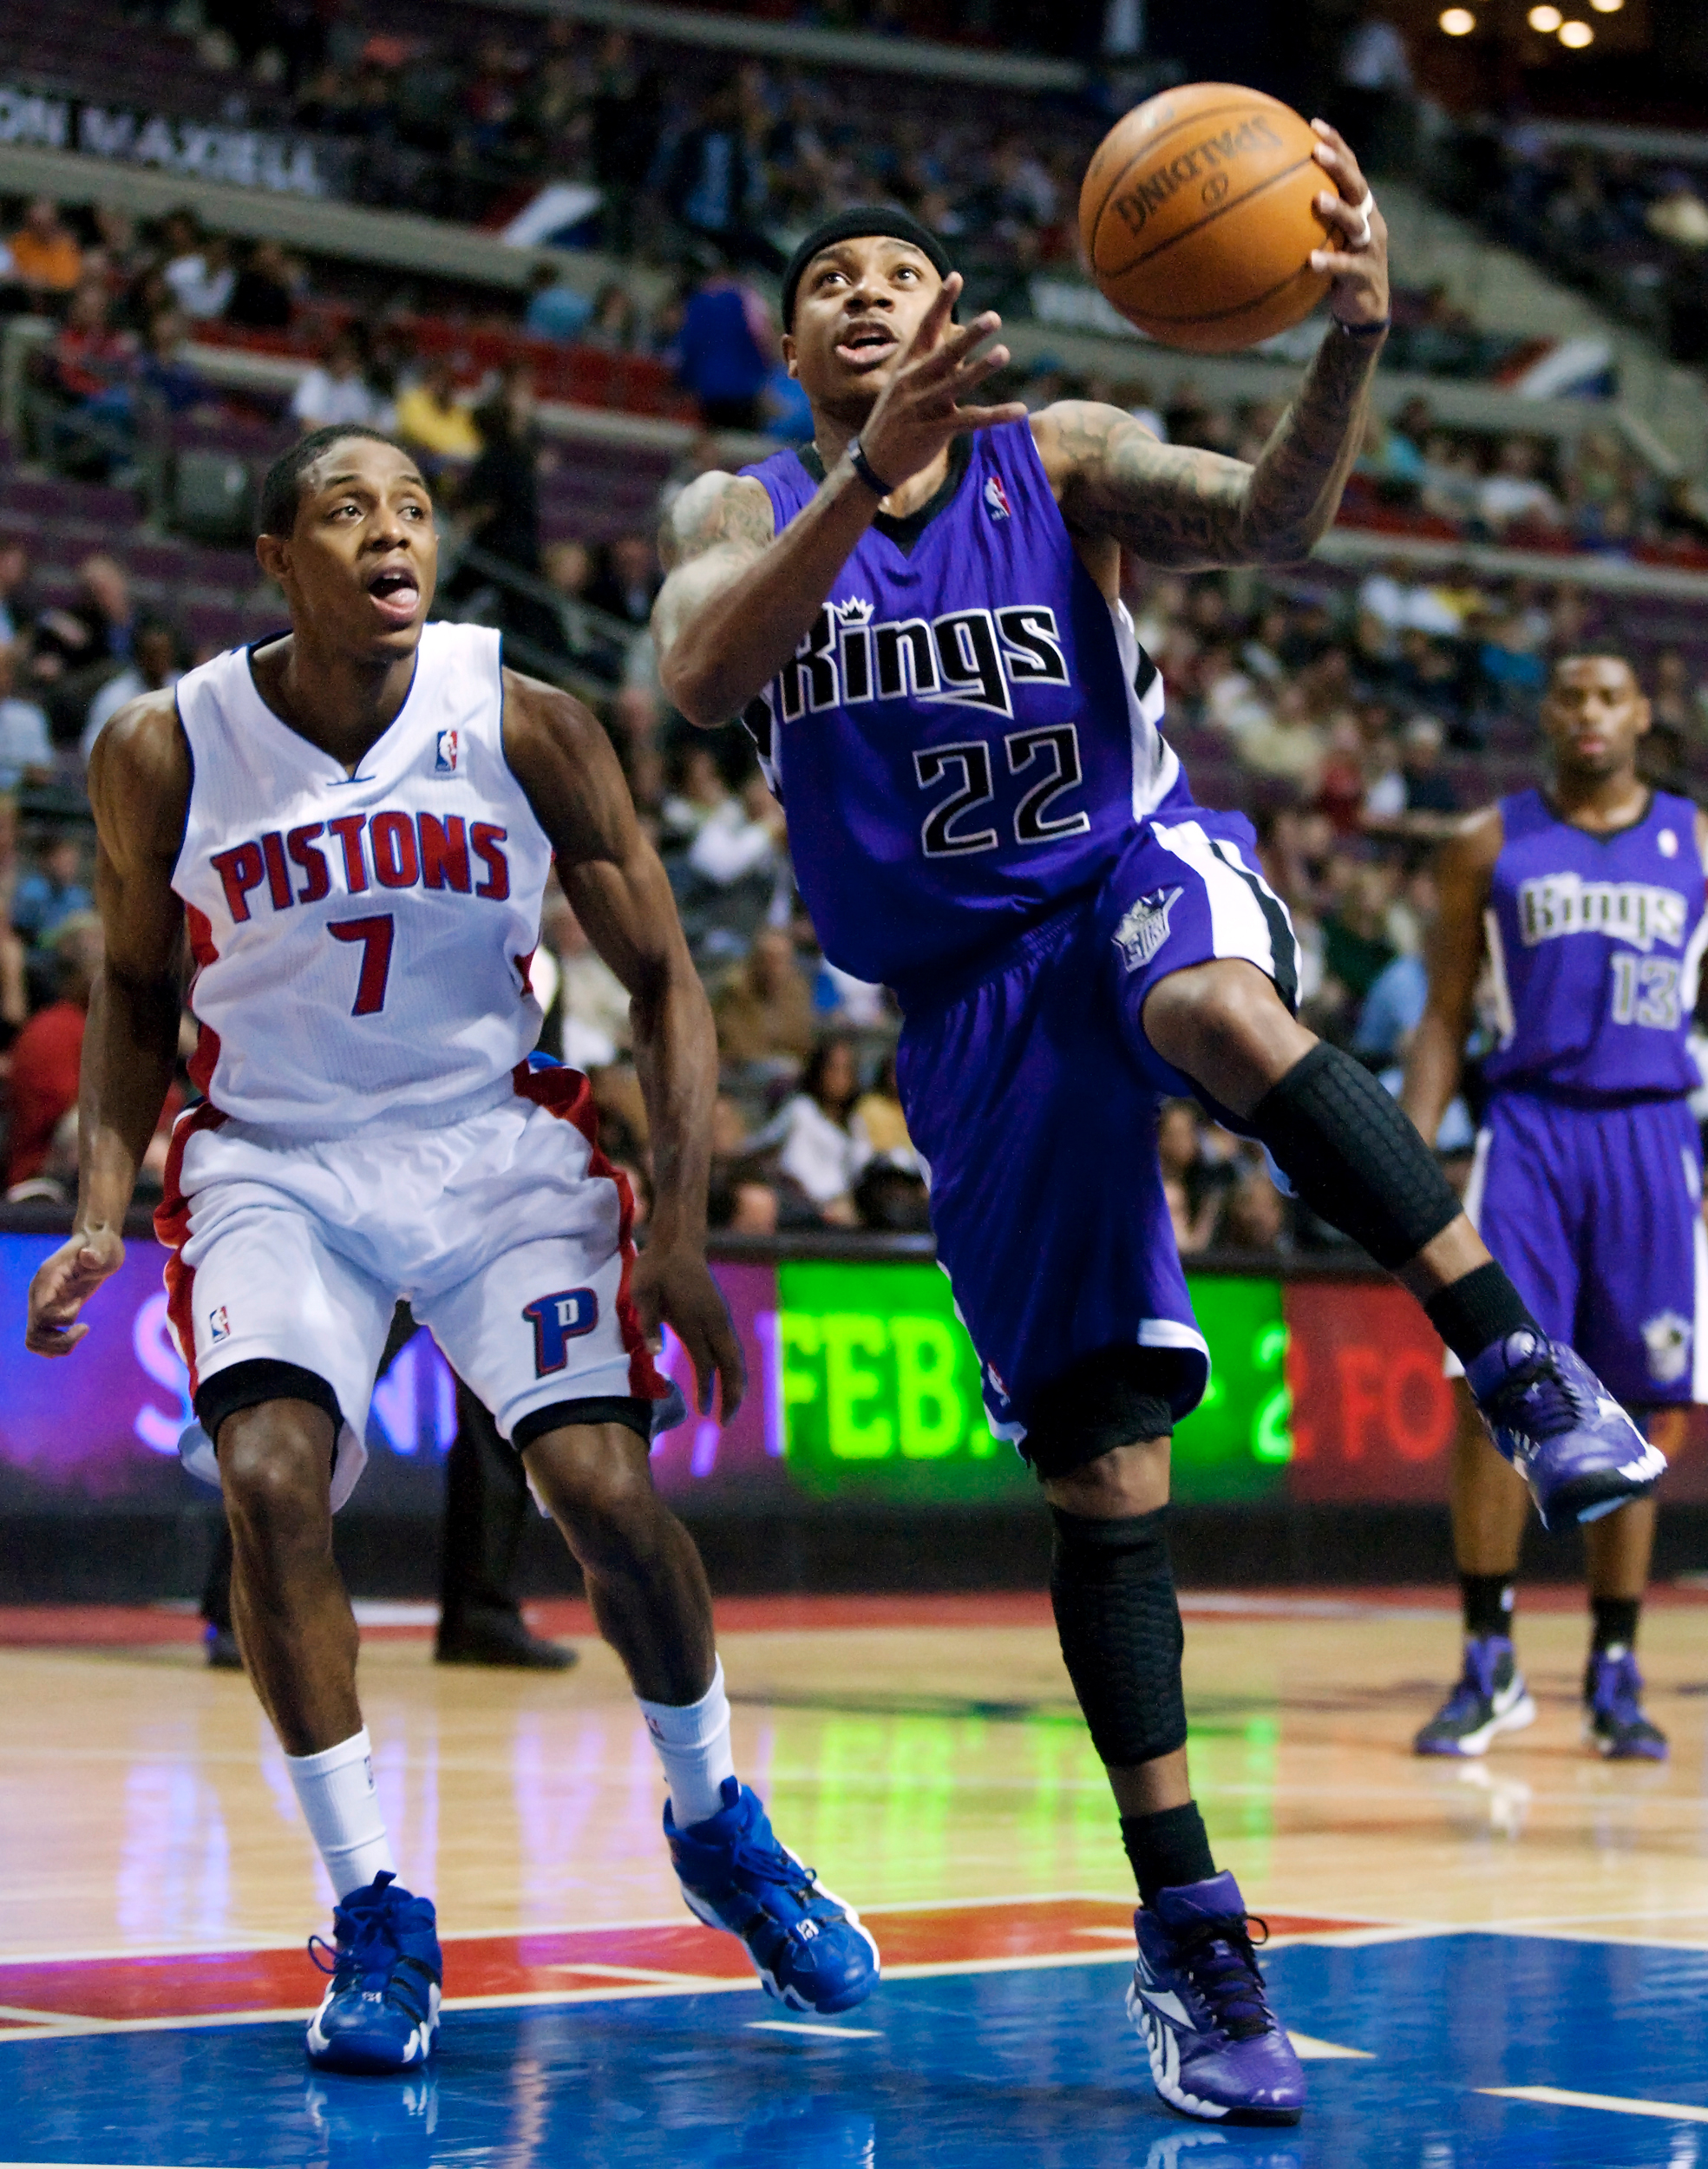 Sacramento Kings' Isaiah Thomas (22) drives to the basket past Detroit Pistons' Brandon Knight (7) in the first half of an NBA basketball game, Friday, Feb. 17, 2012, in Auburn Hills, Mich.